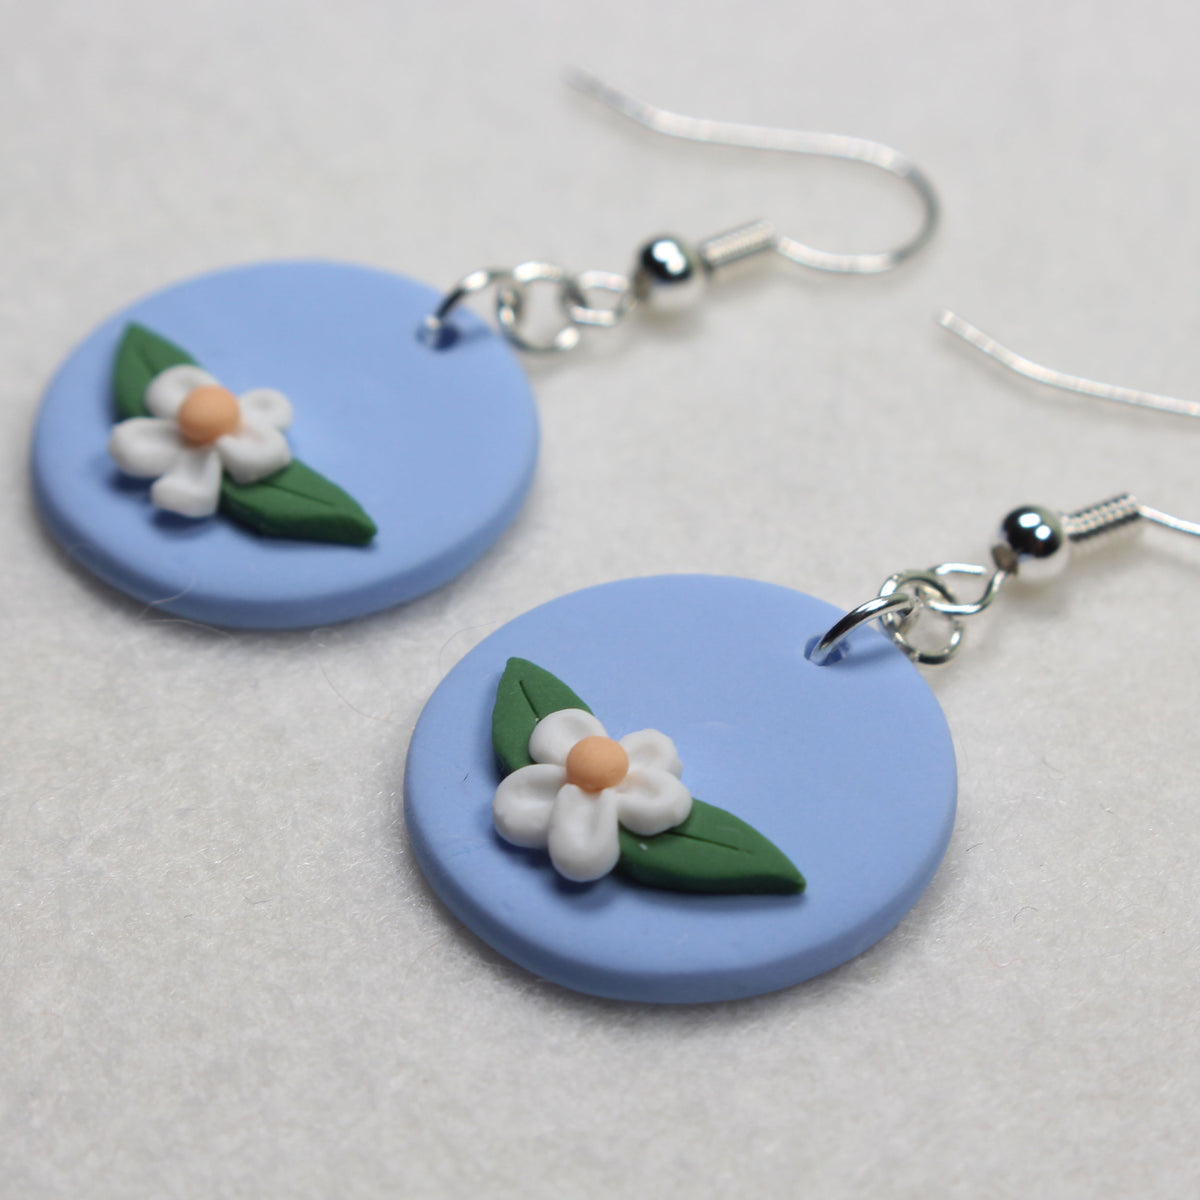 simple nickel free hook earrings. baby blue background with a small white petal daisy in between two leaves